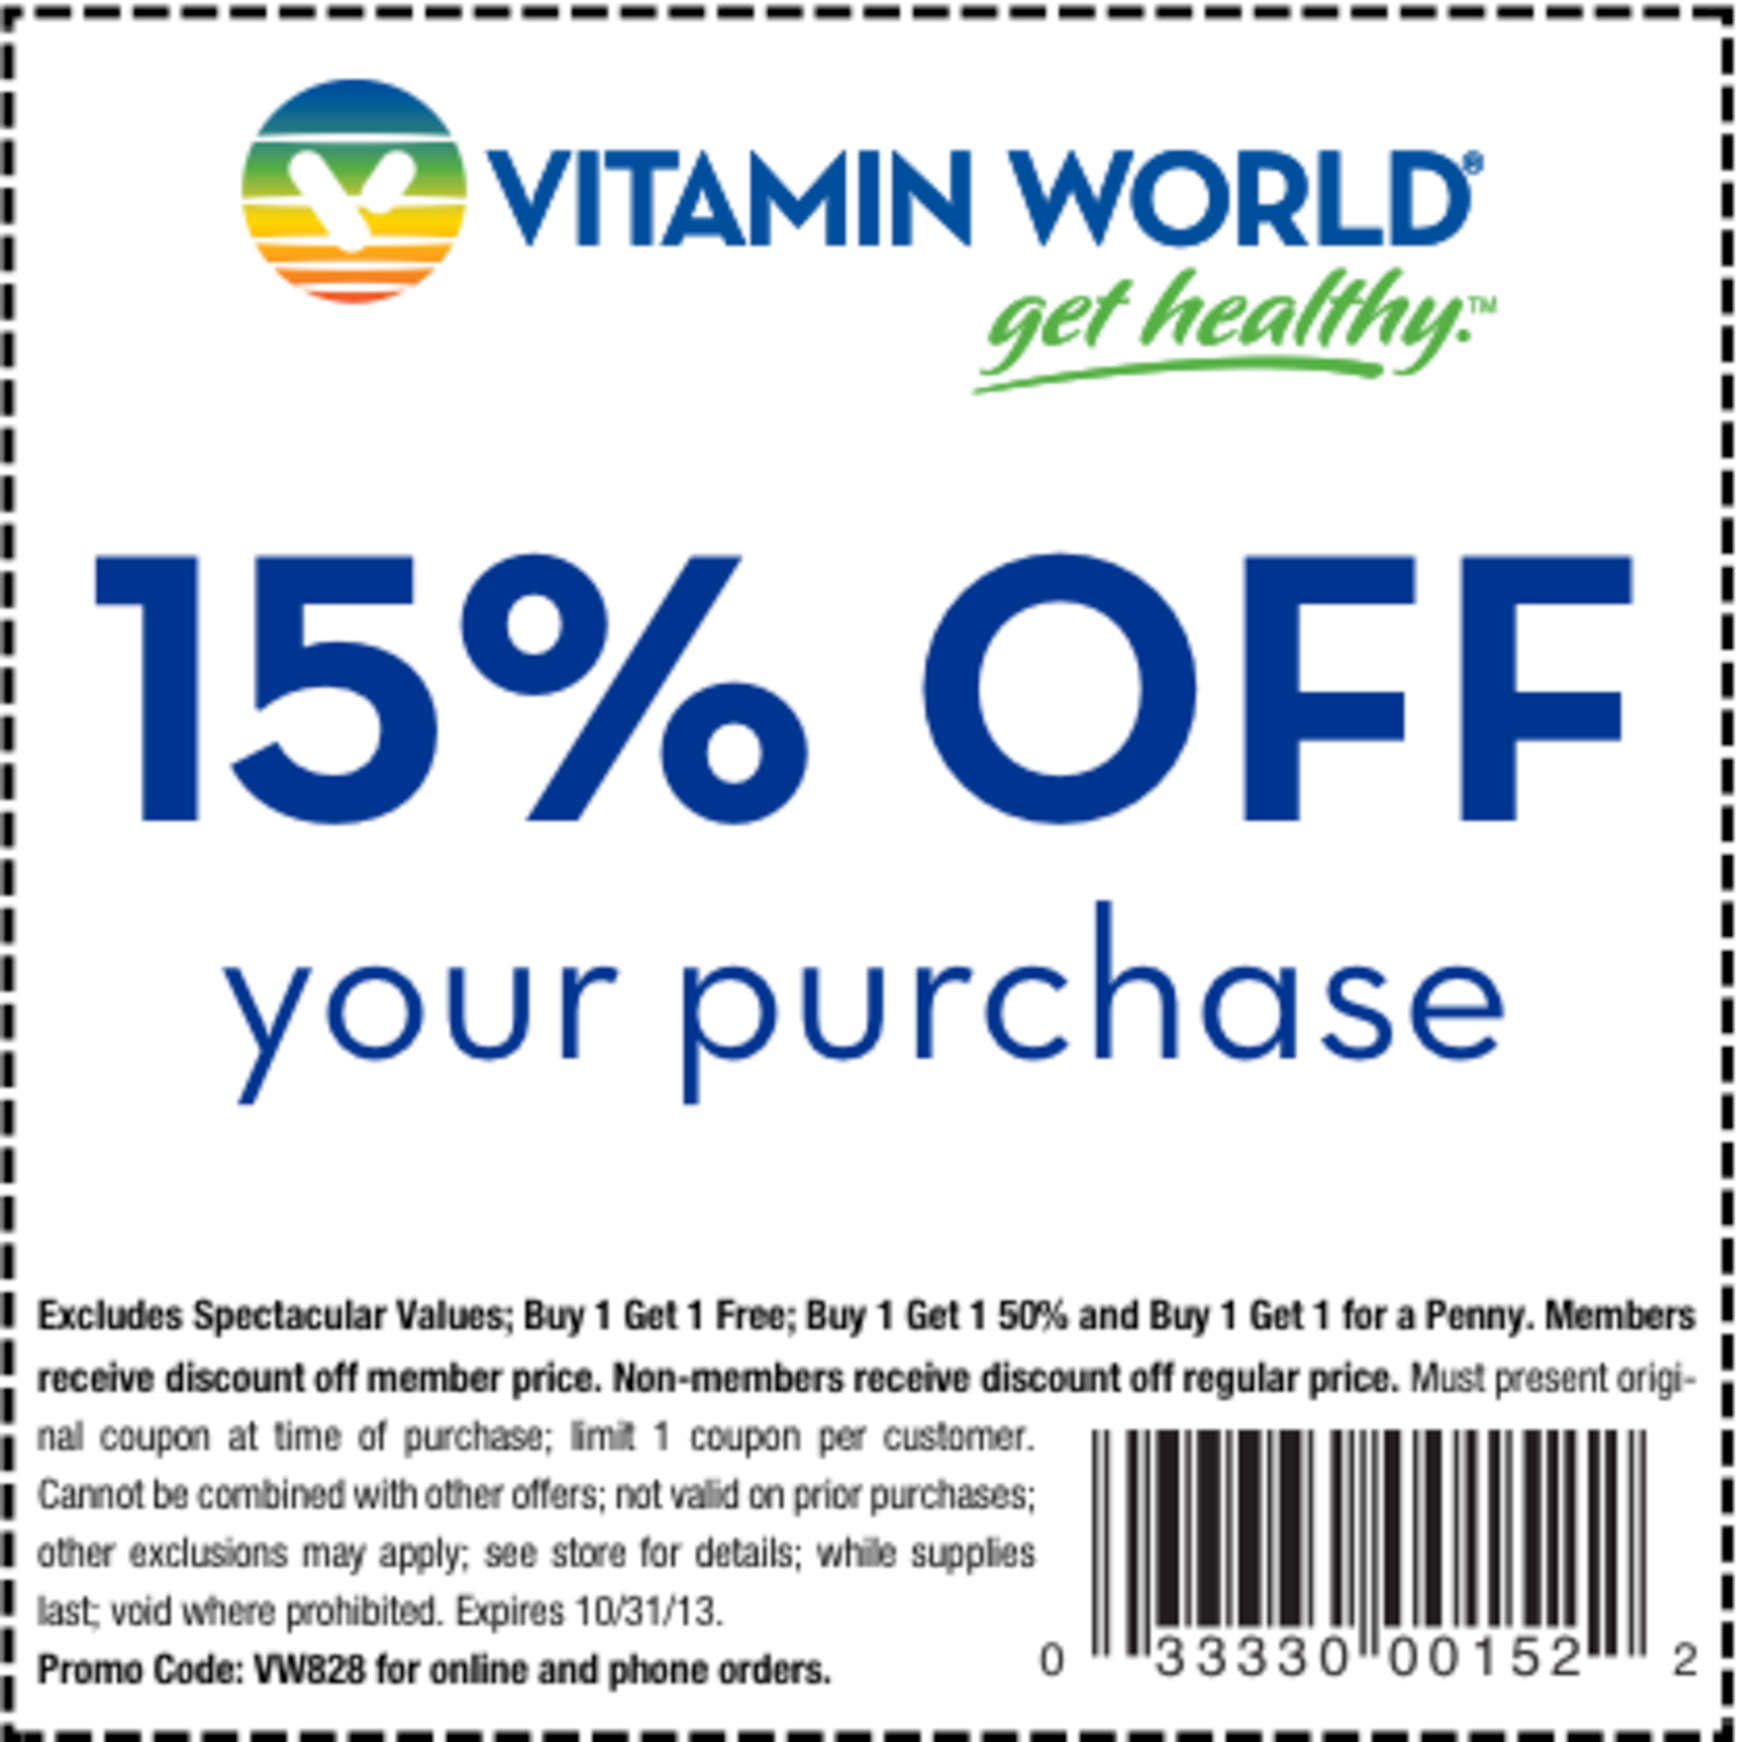 The Vitamin Shoppe regularly posts sales and coupon codes on their website. There is a deals tab at the top of their website and you can access exclusive promotions and discount codes by subscribing to their email newsletter.